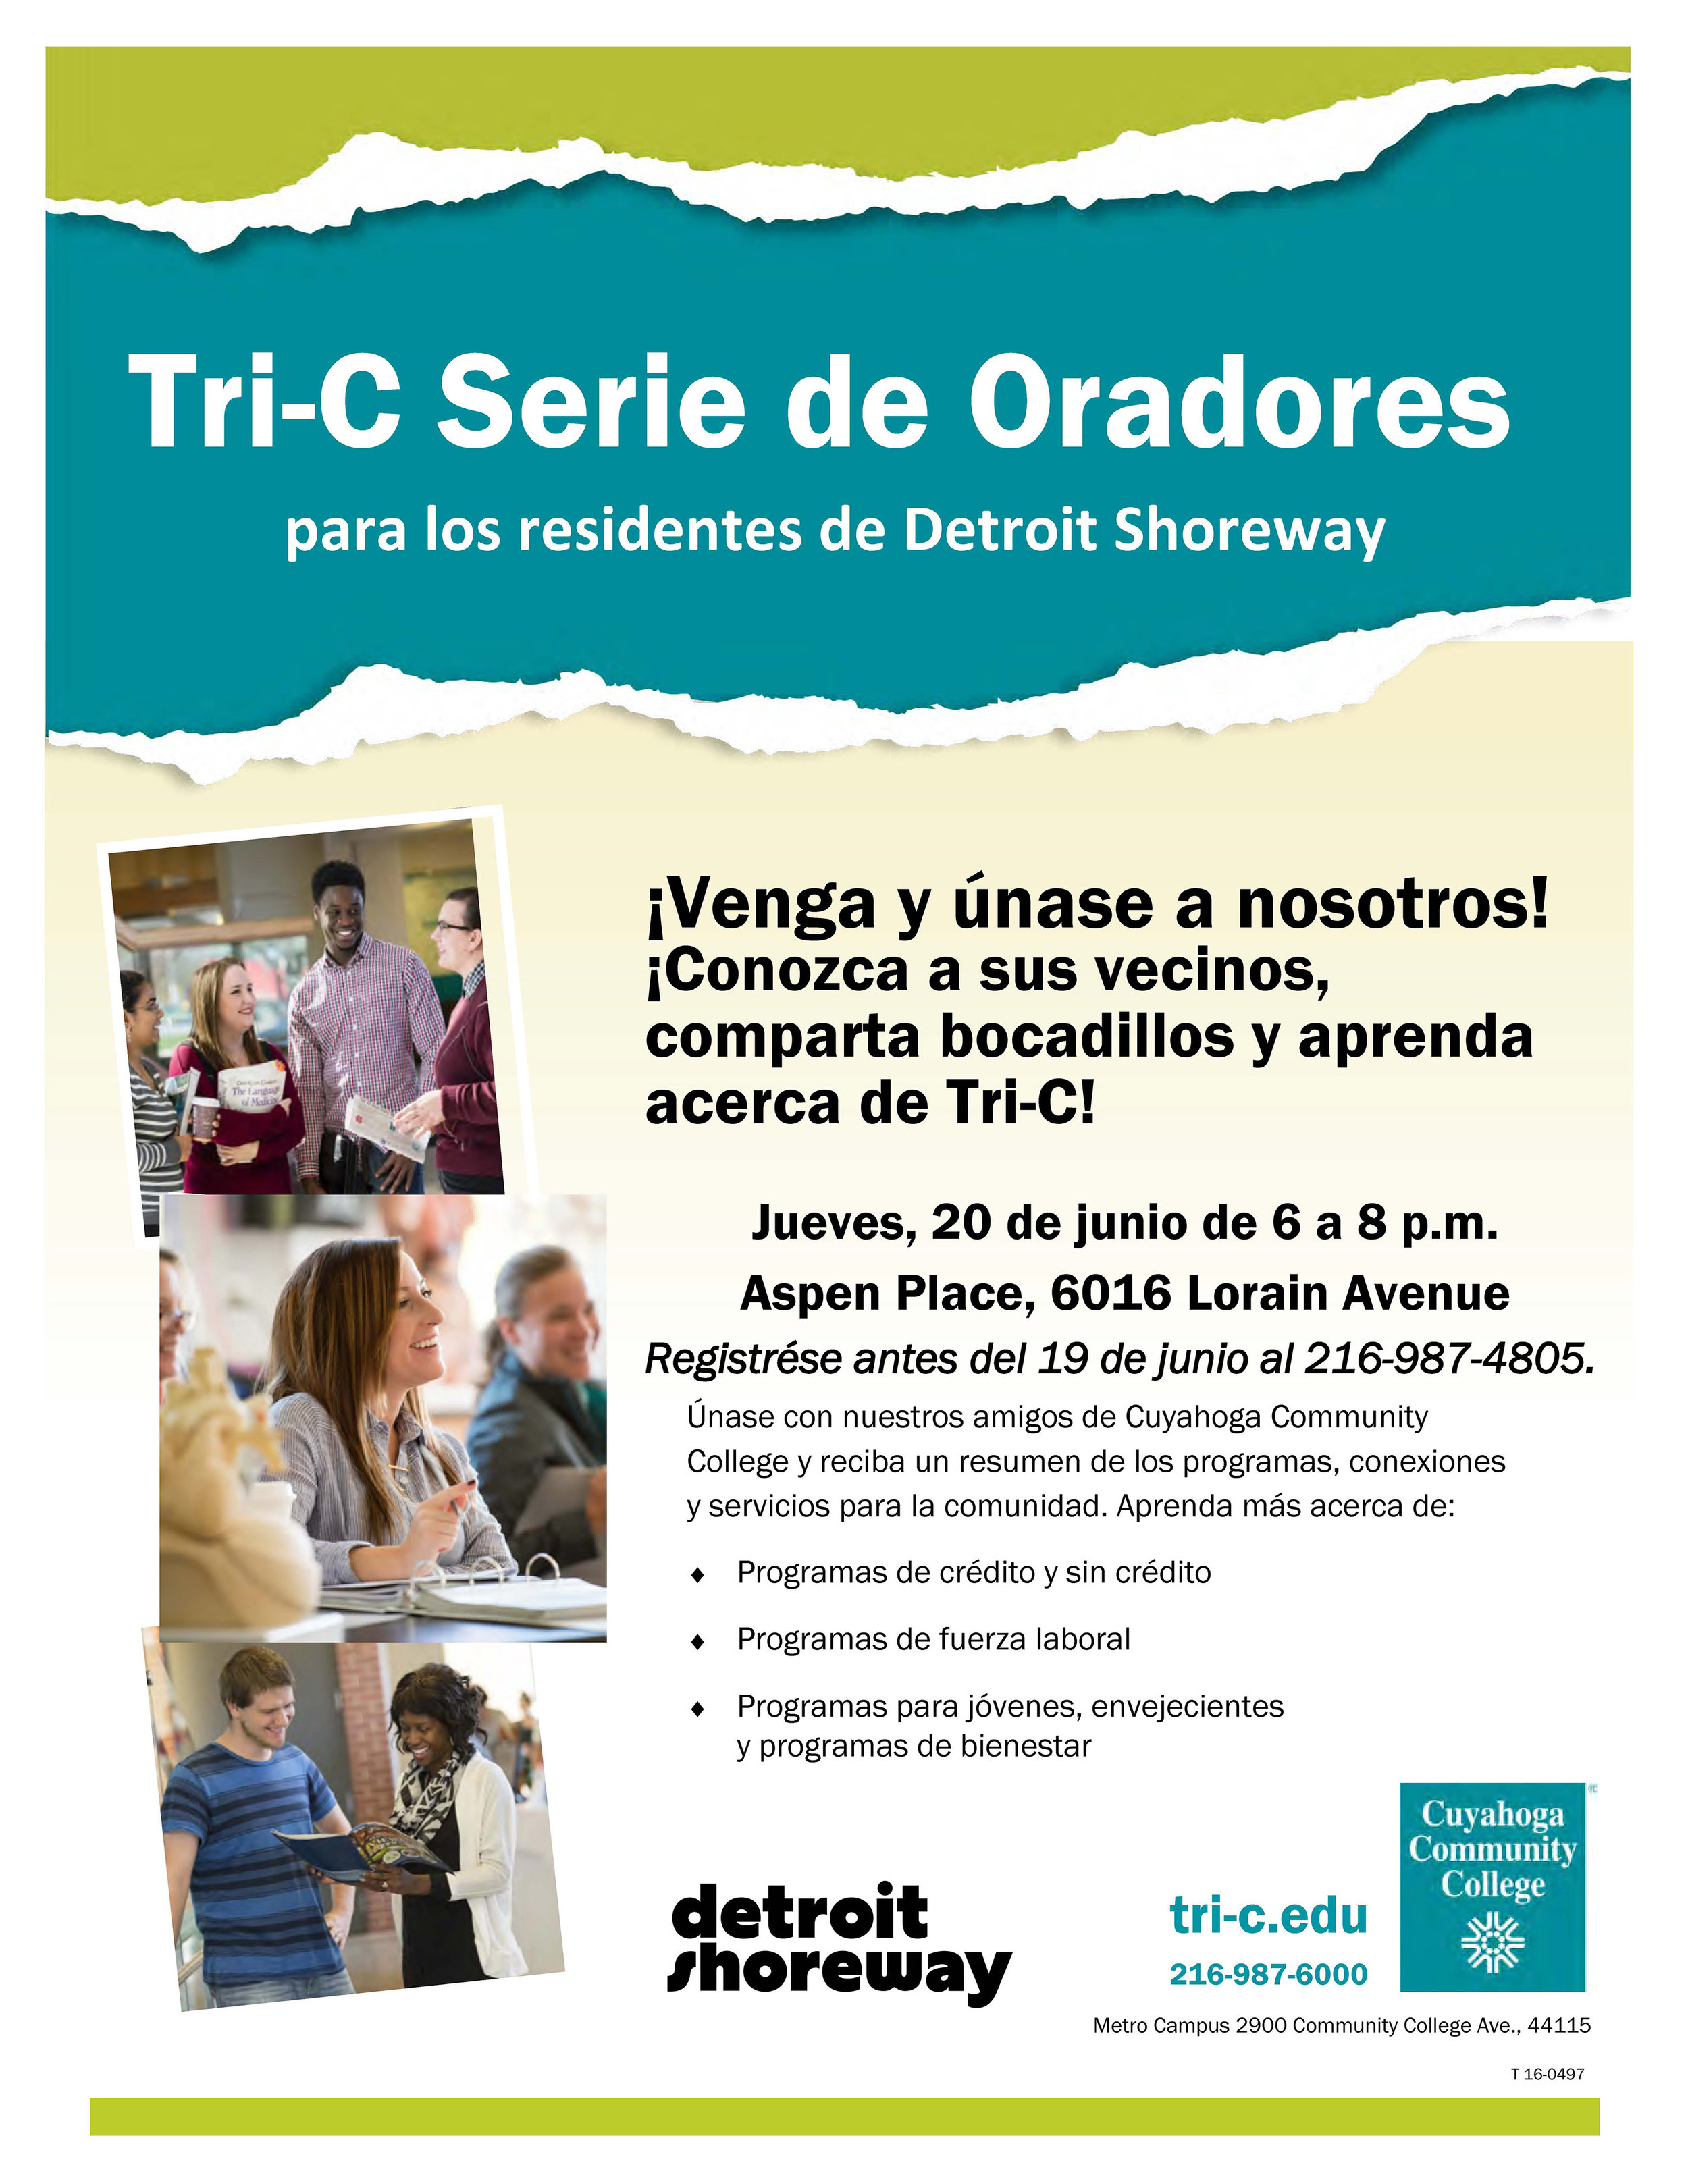 Tri-C Speaker Series Detroit Shoreway 16-0497 ICD Flyer - Espanol.jpg